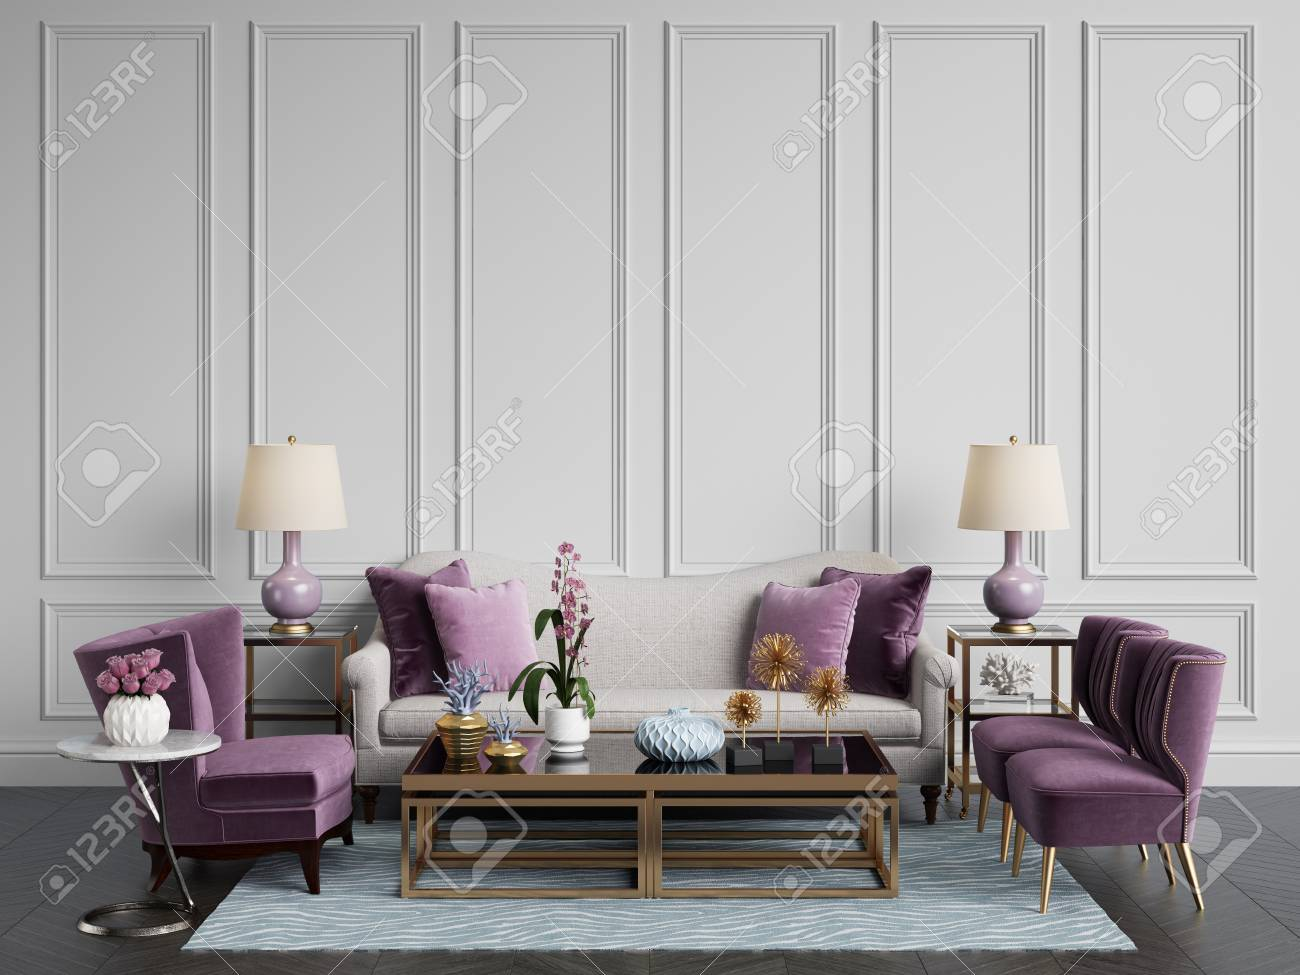 Classic Interior.Sofa,chairs,sidetables With Lamps,table With ...